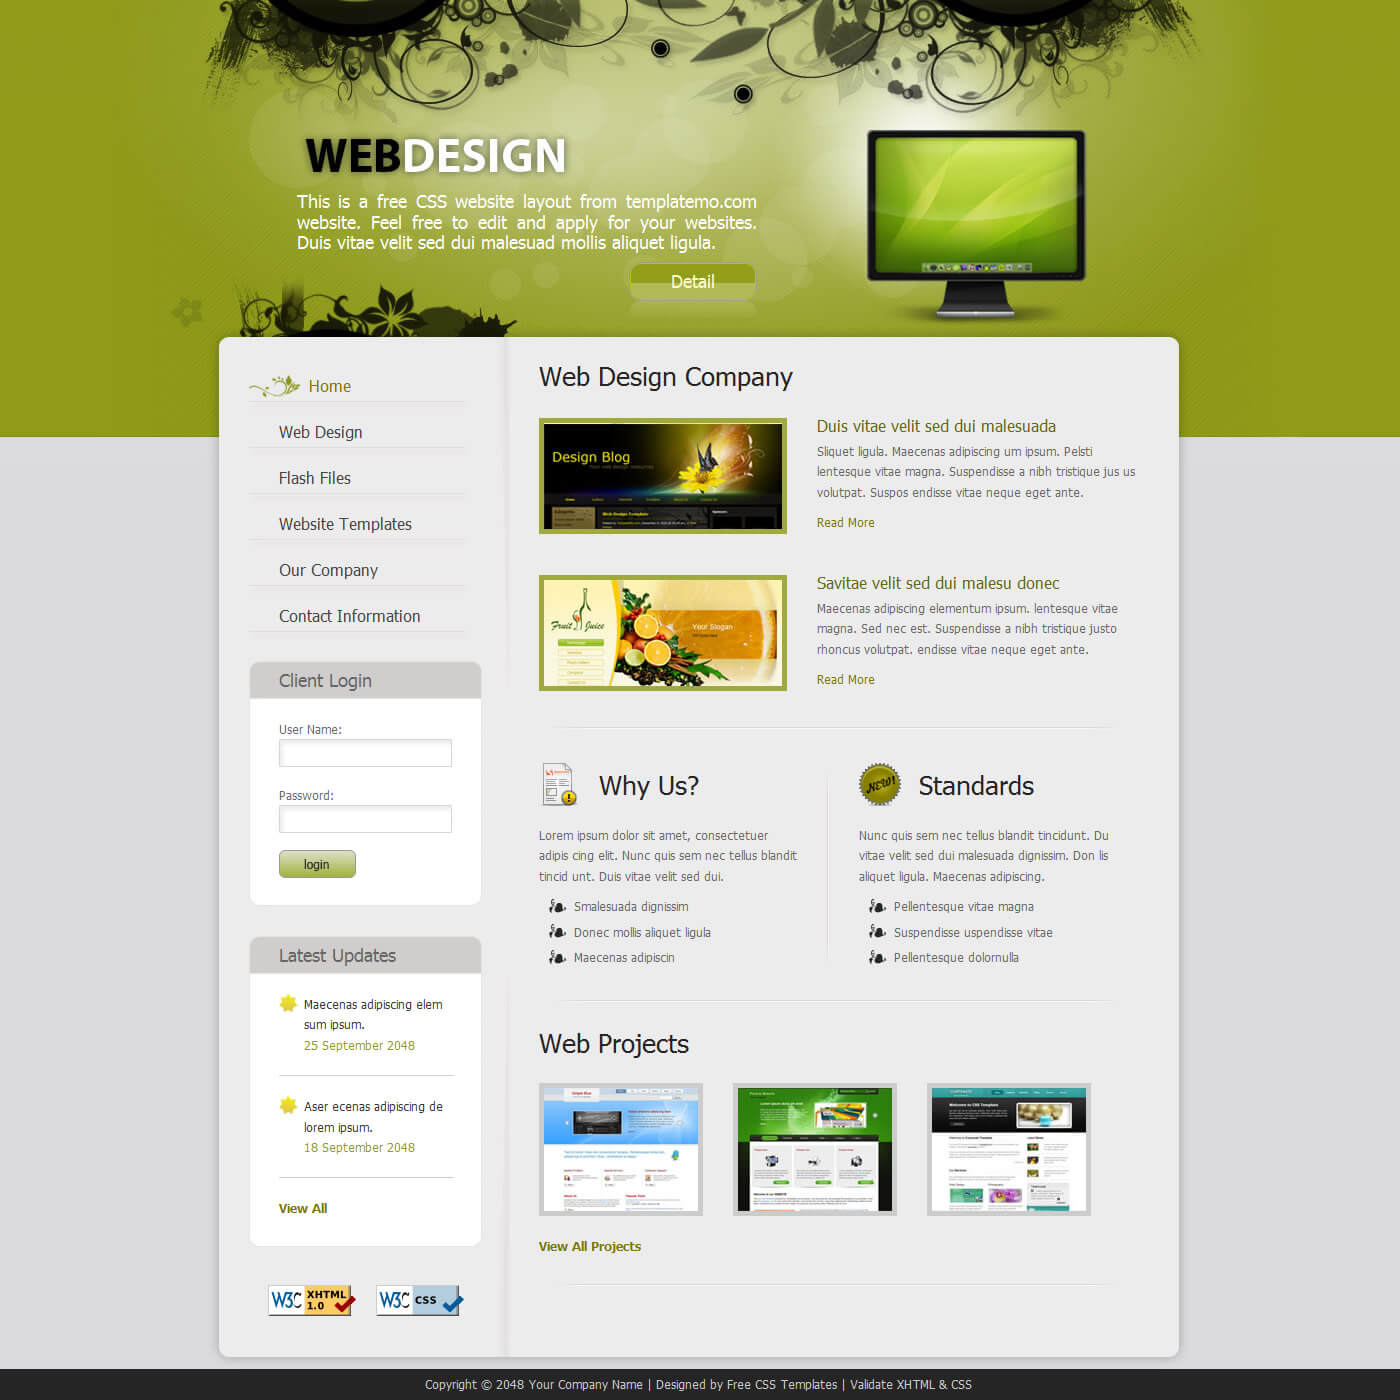 template design quick fast website easy cheap no support